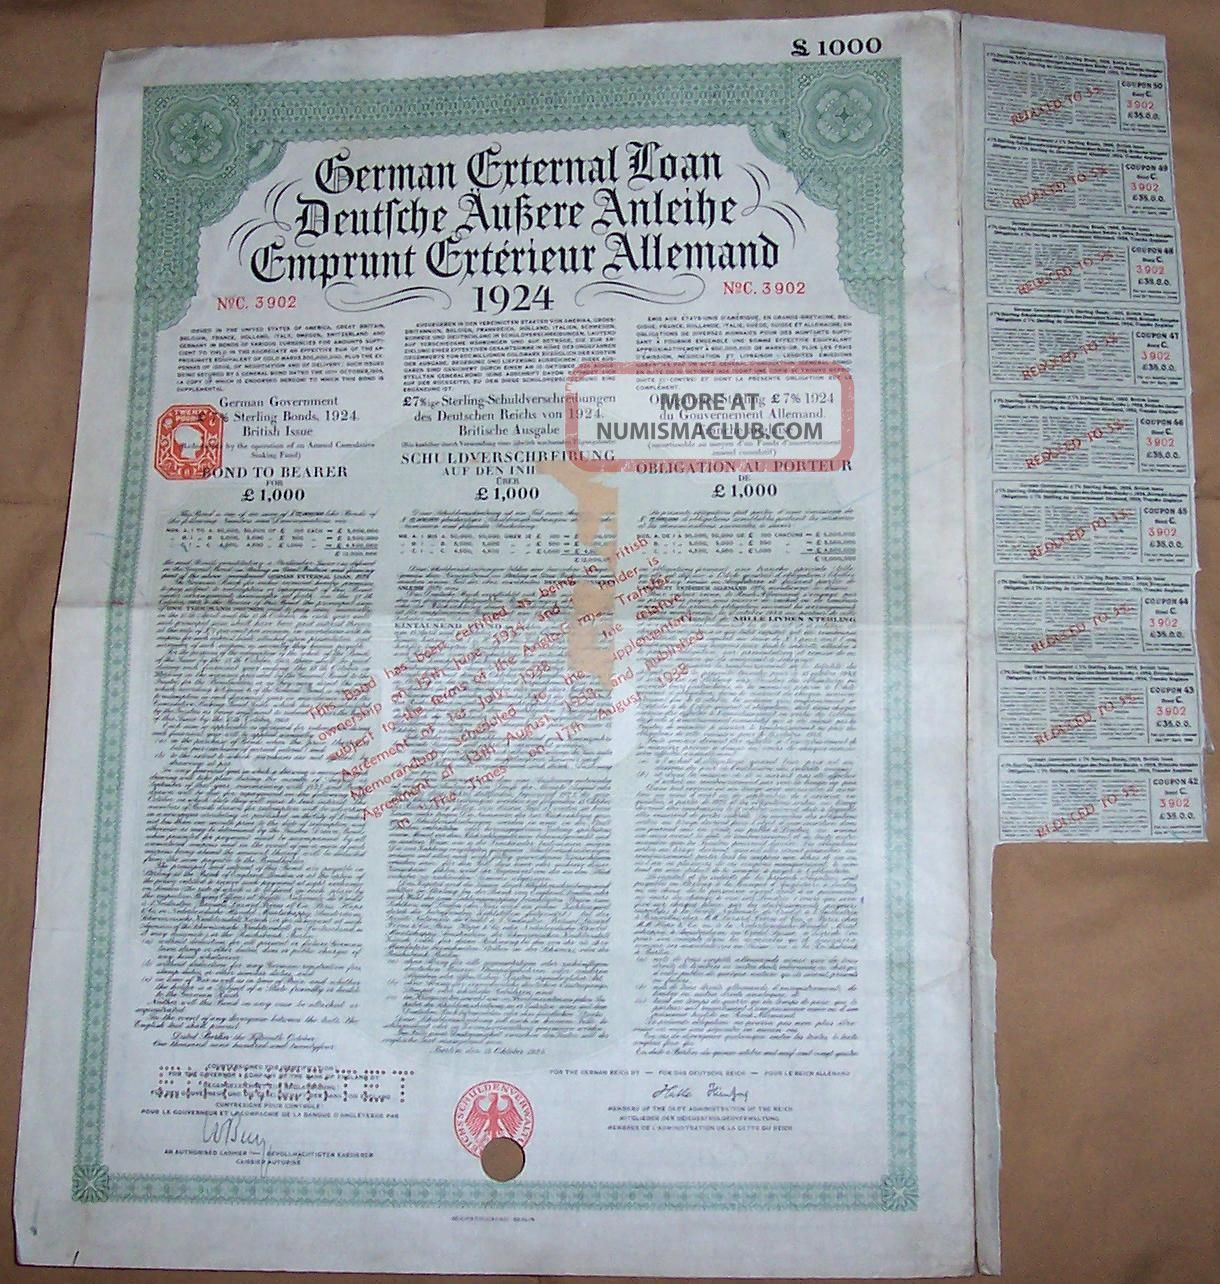 Germany Sterling Loan 1924 Bond 7% Uk Gb Issue £1000 Daves Coupons World photo